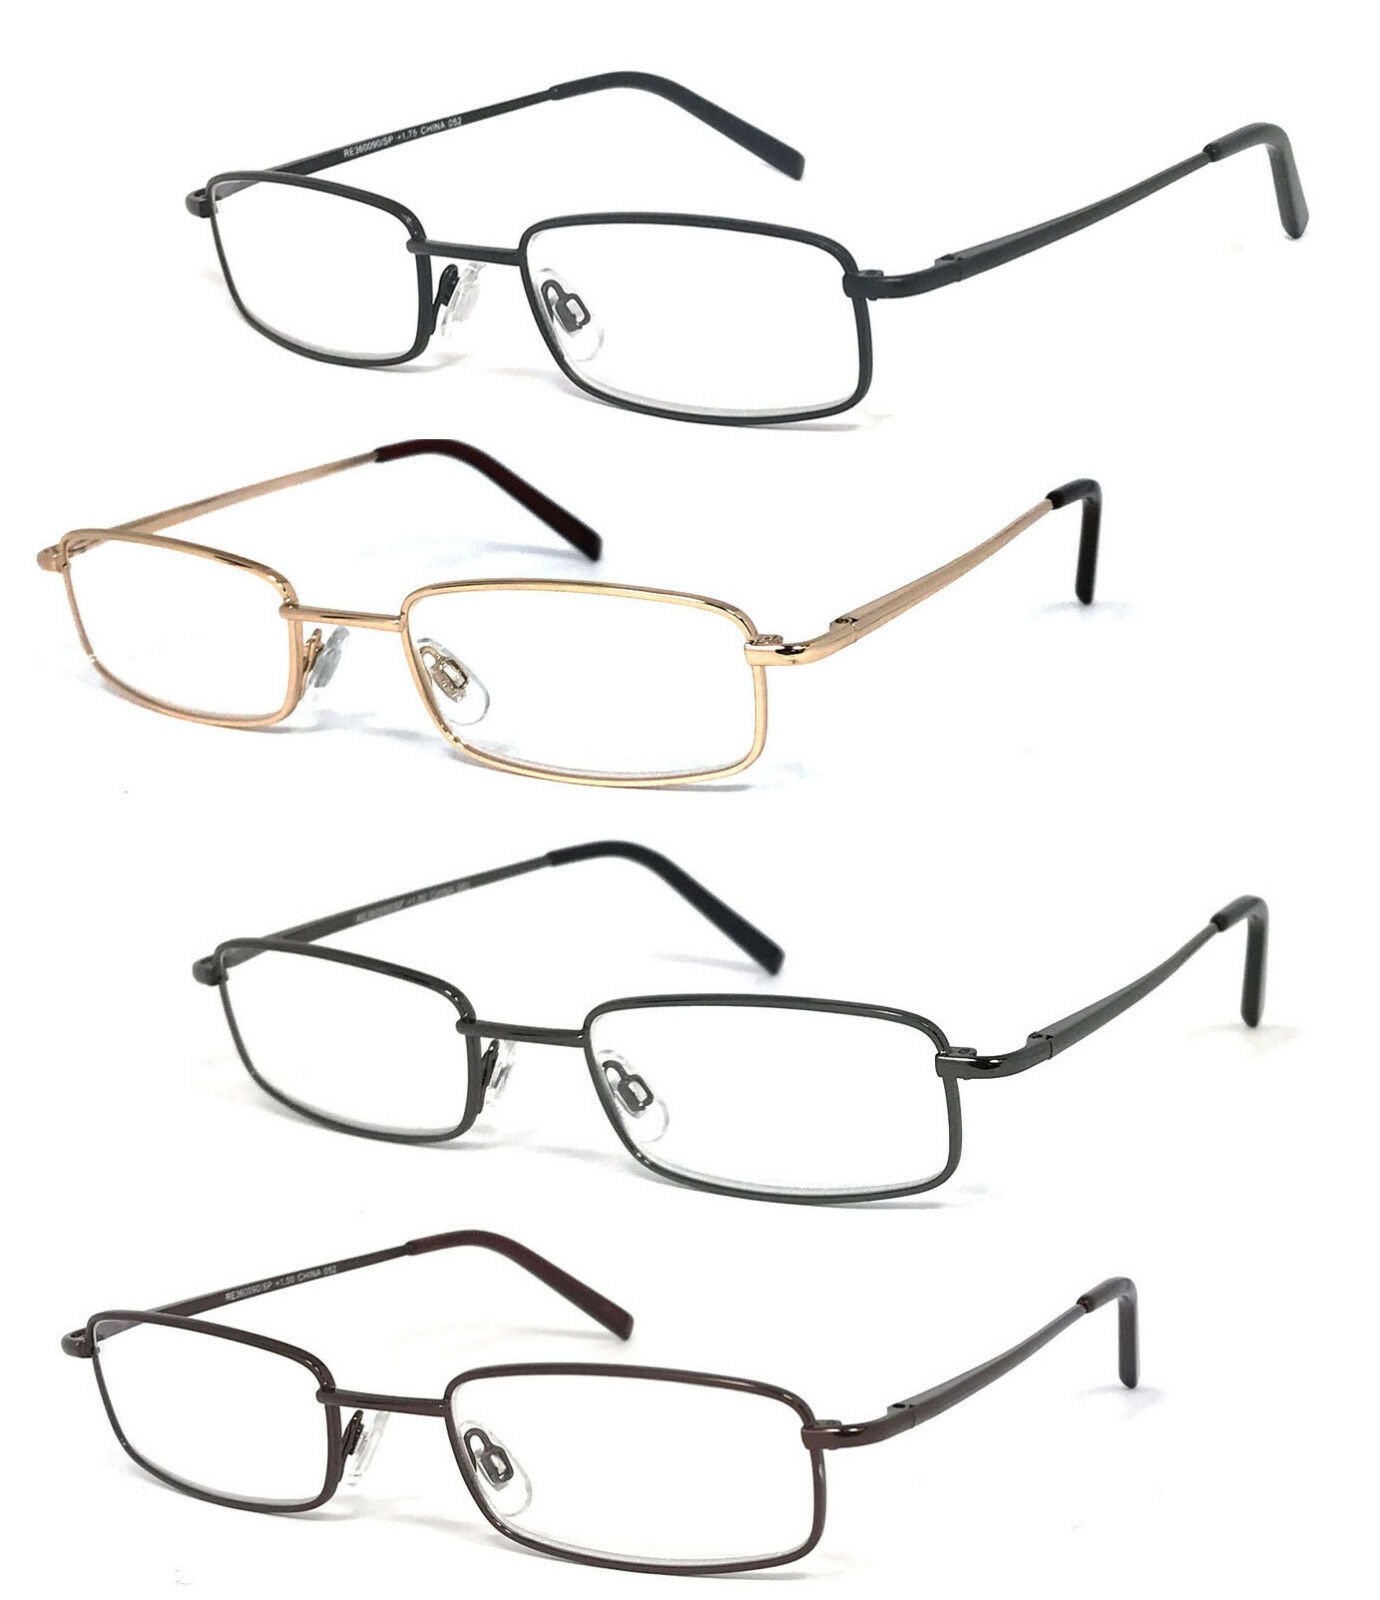 Retro Rectangle Reading Glasses Metal Frame Spring Hinges